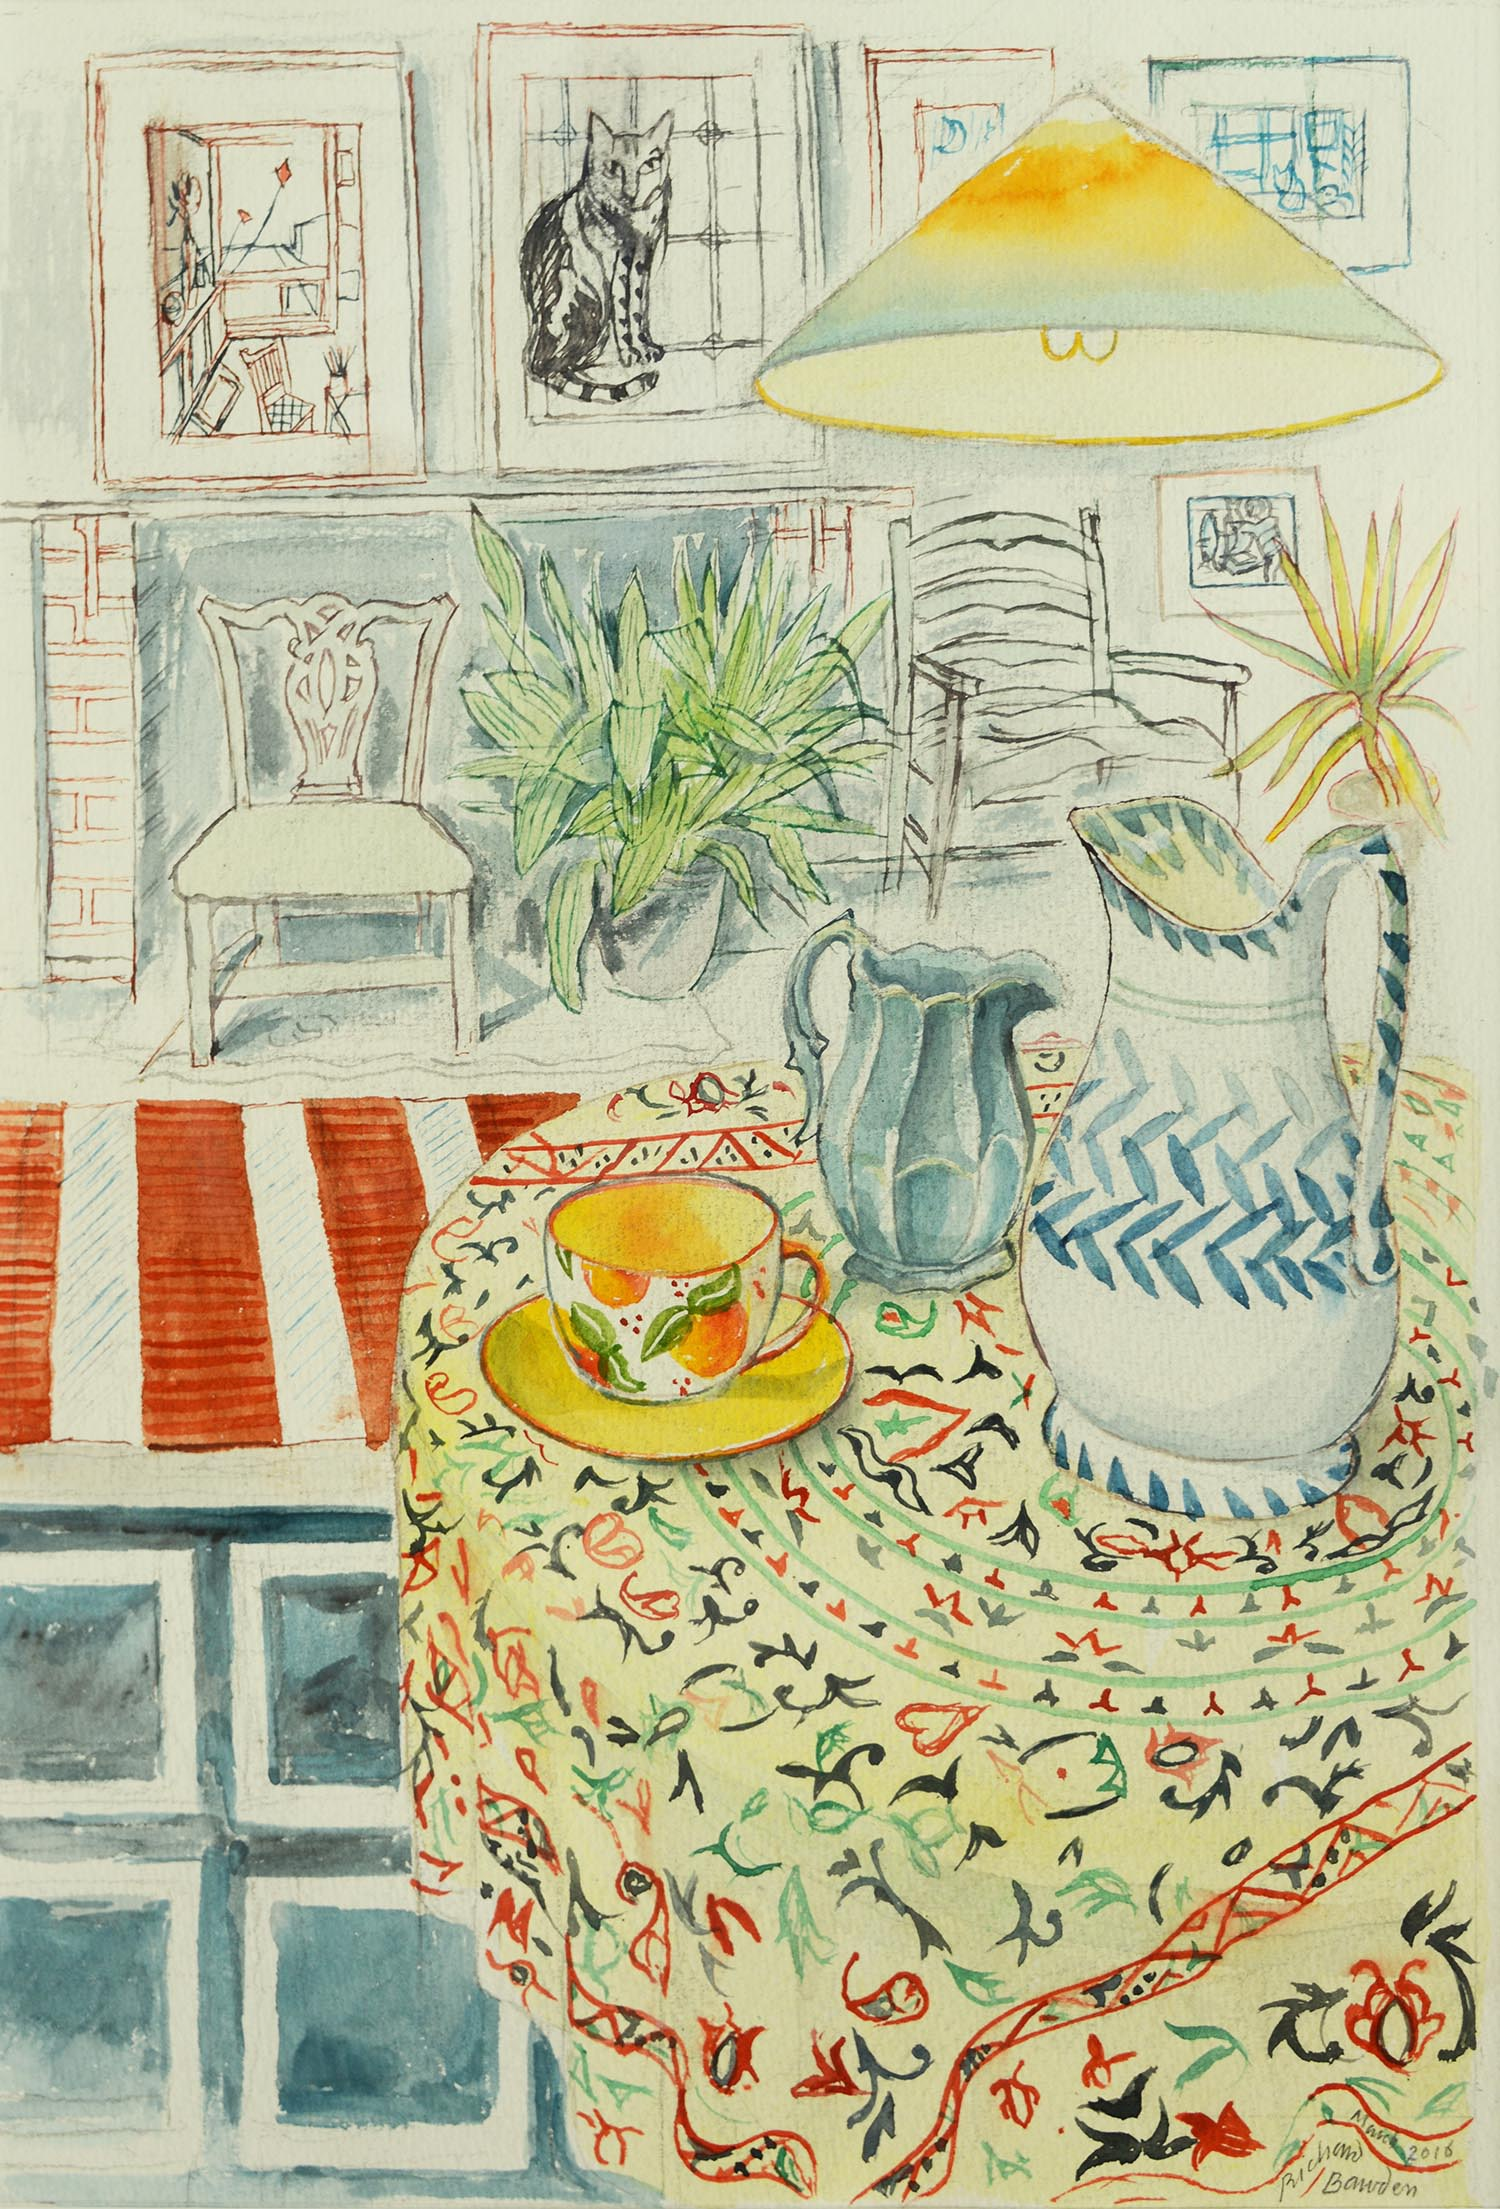 <span class=&#34;link fancybox-details-link&#34;><a href=&#34;/artists/38-richard-bawden/works/9804-richard-bawden-a-bright-day/&#34;>View Detail Page</a></span><div class=&#34;artist&#34;><span class=&#34;artist&#34;><strong>Richard Bawden</strong></span></div>